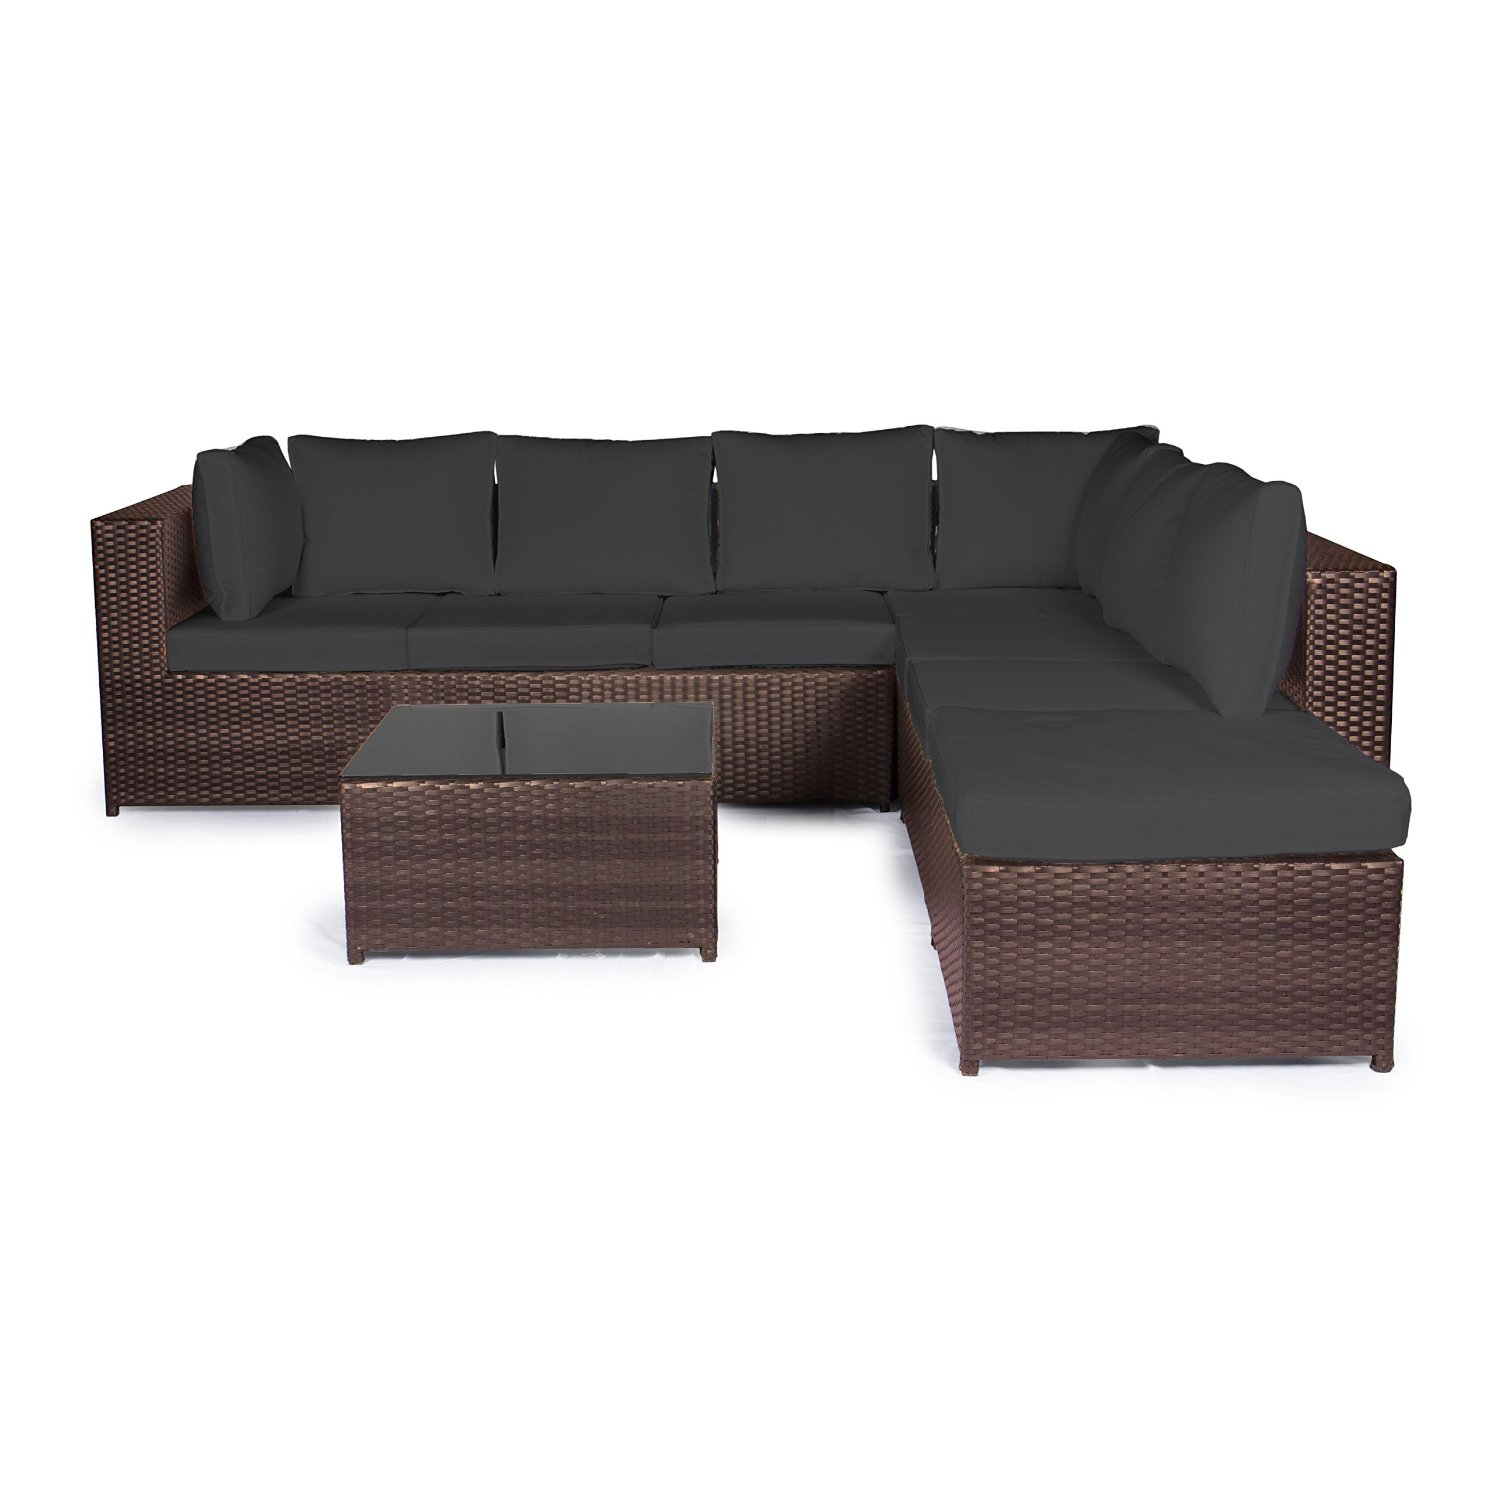 Rattan sofa test top 5 testsieger neu for Balkonmobel rattan lounge